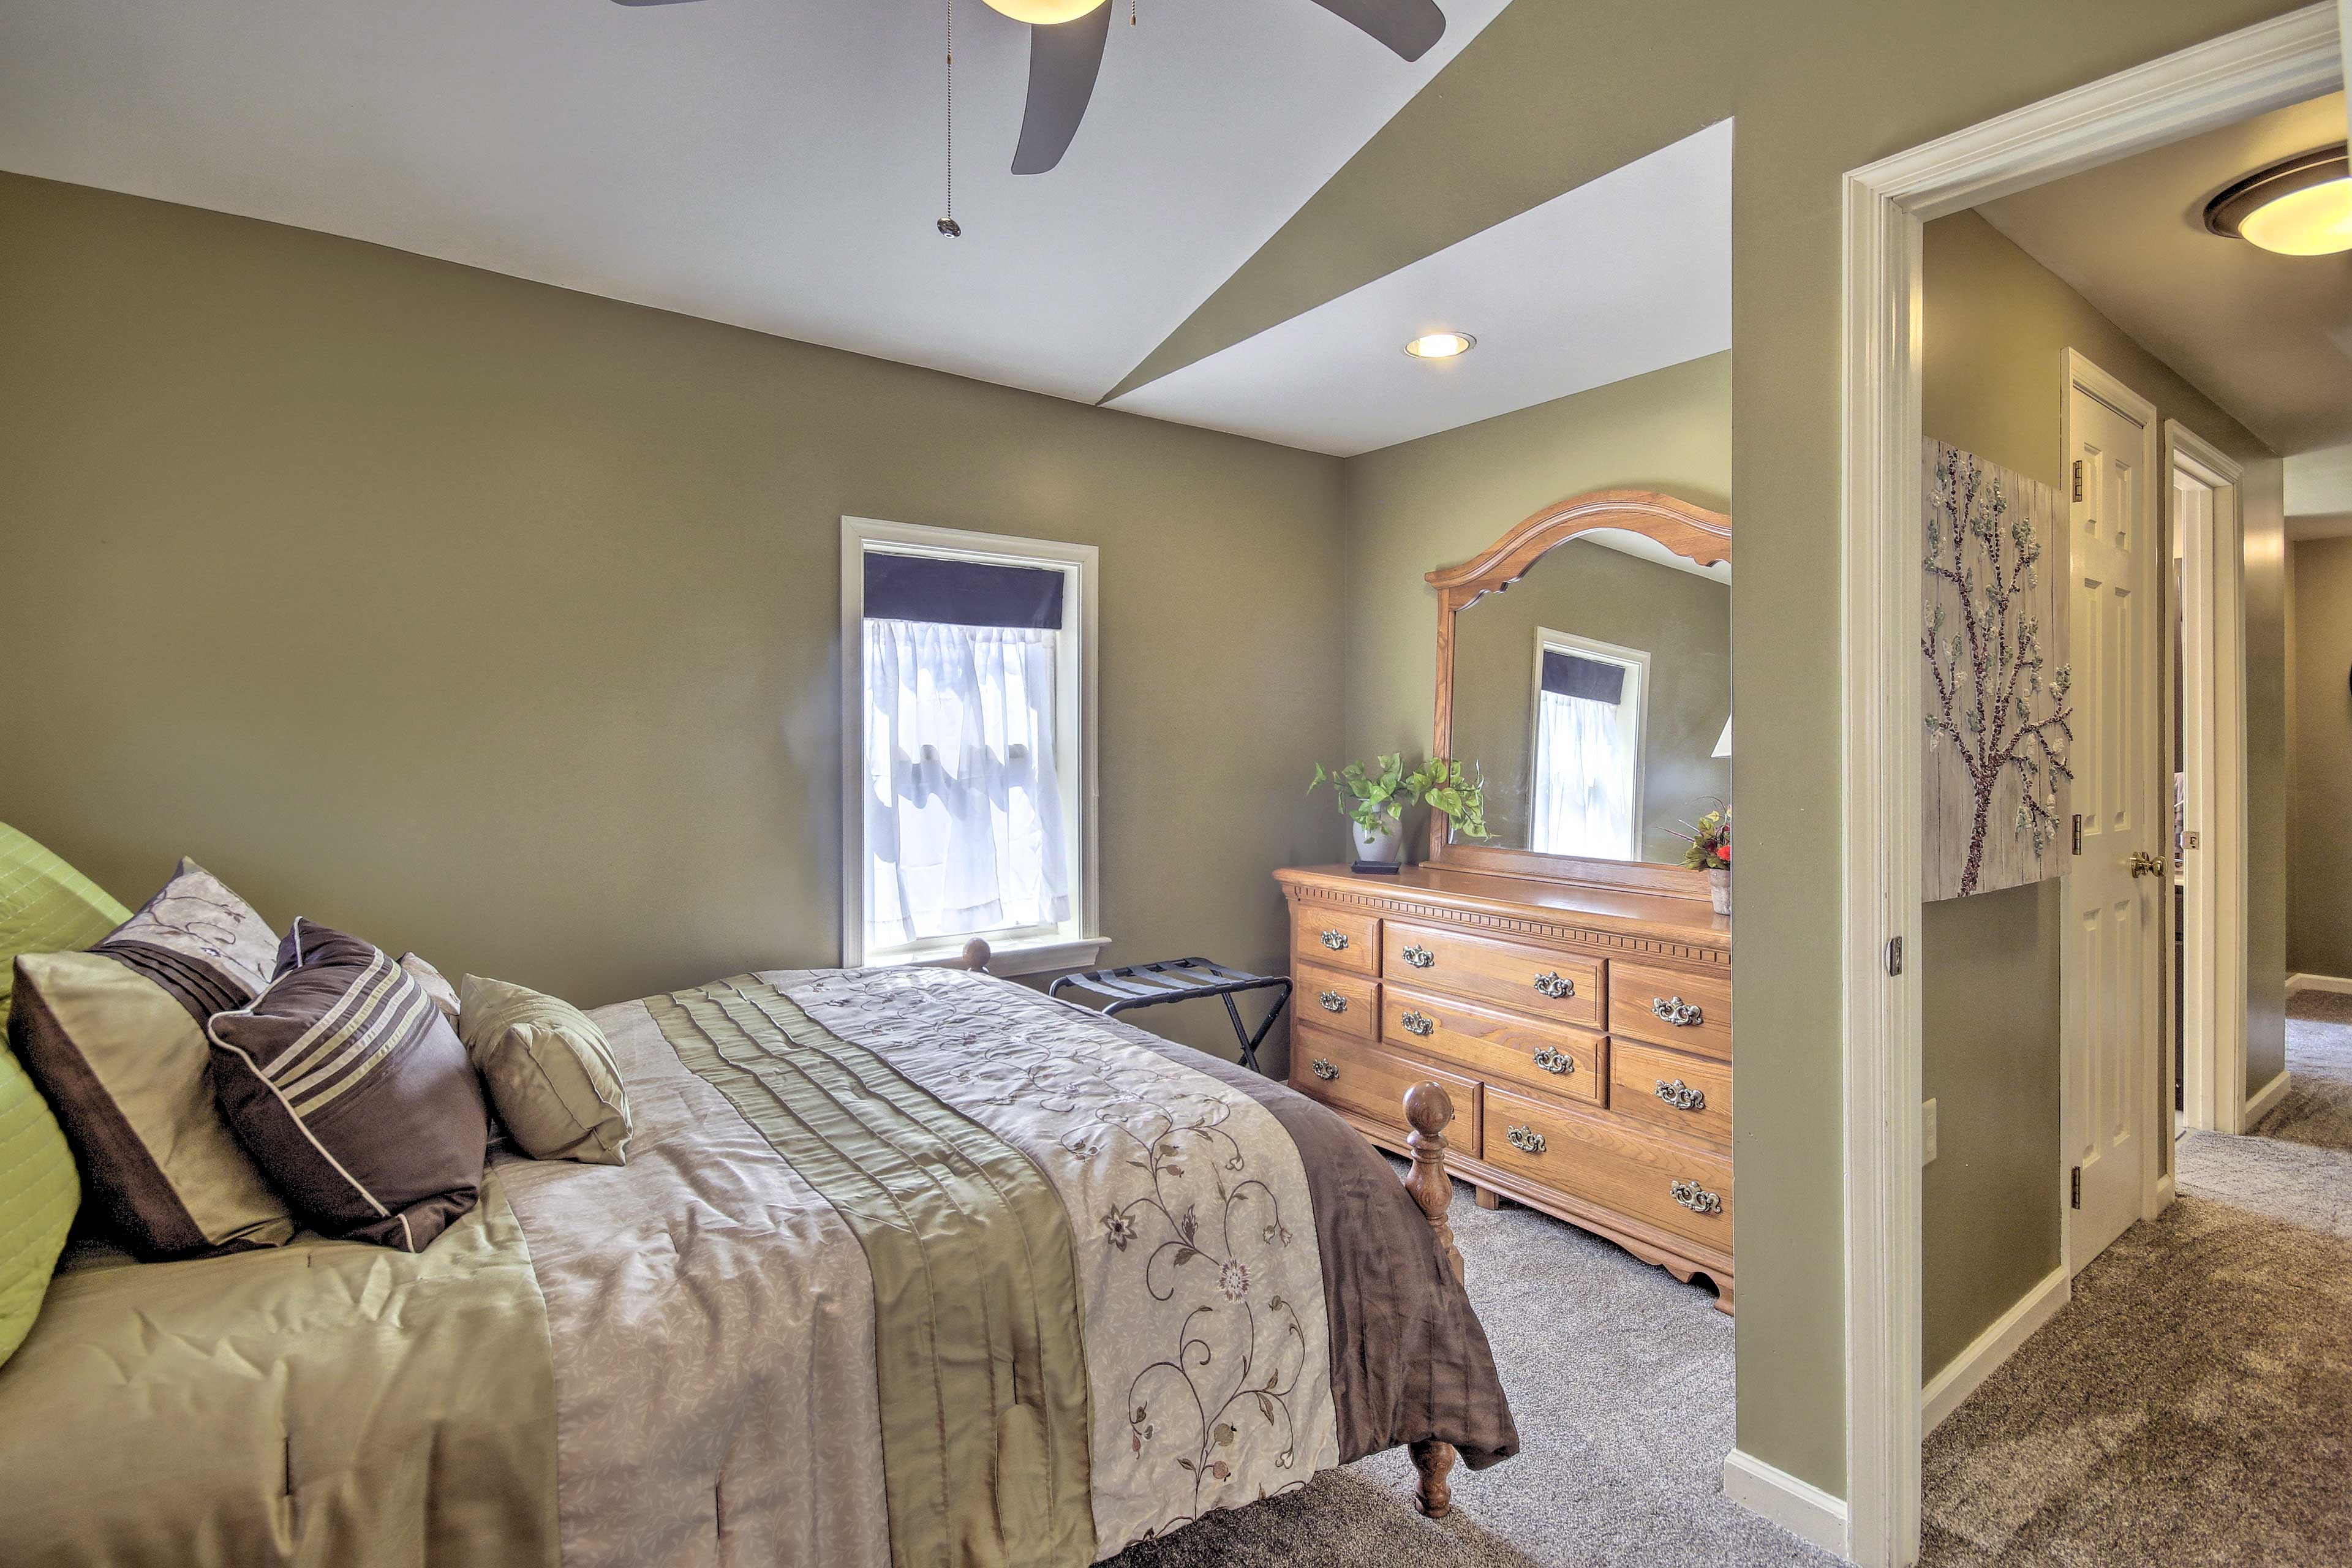 This bedroom also includes a full bed.